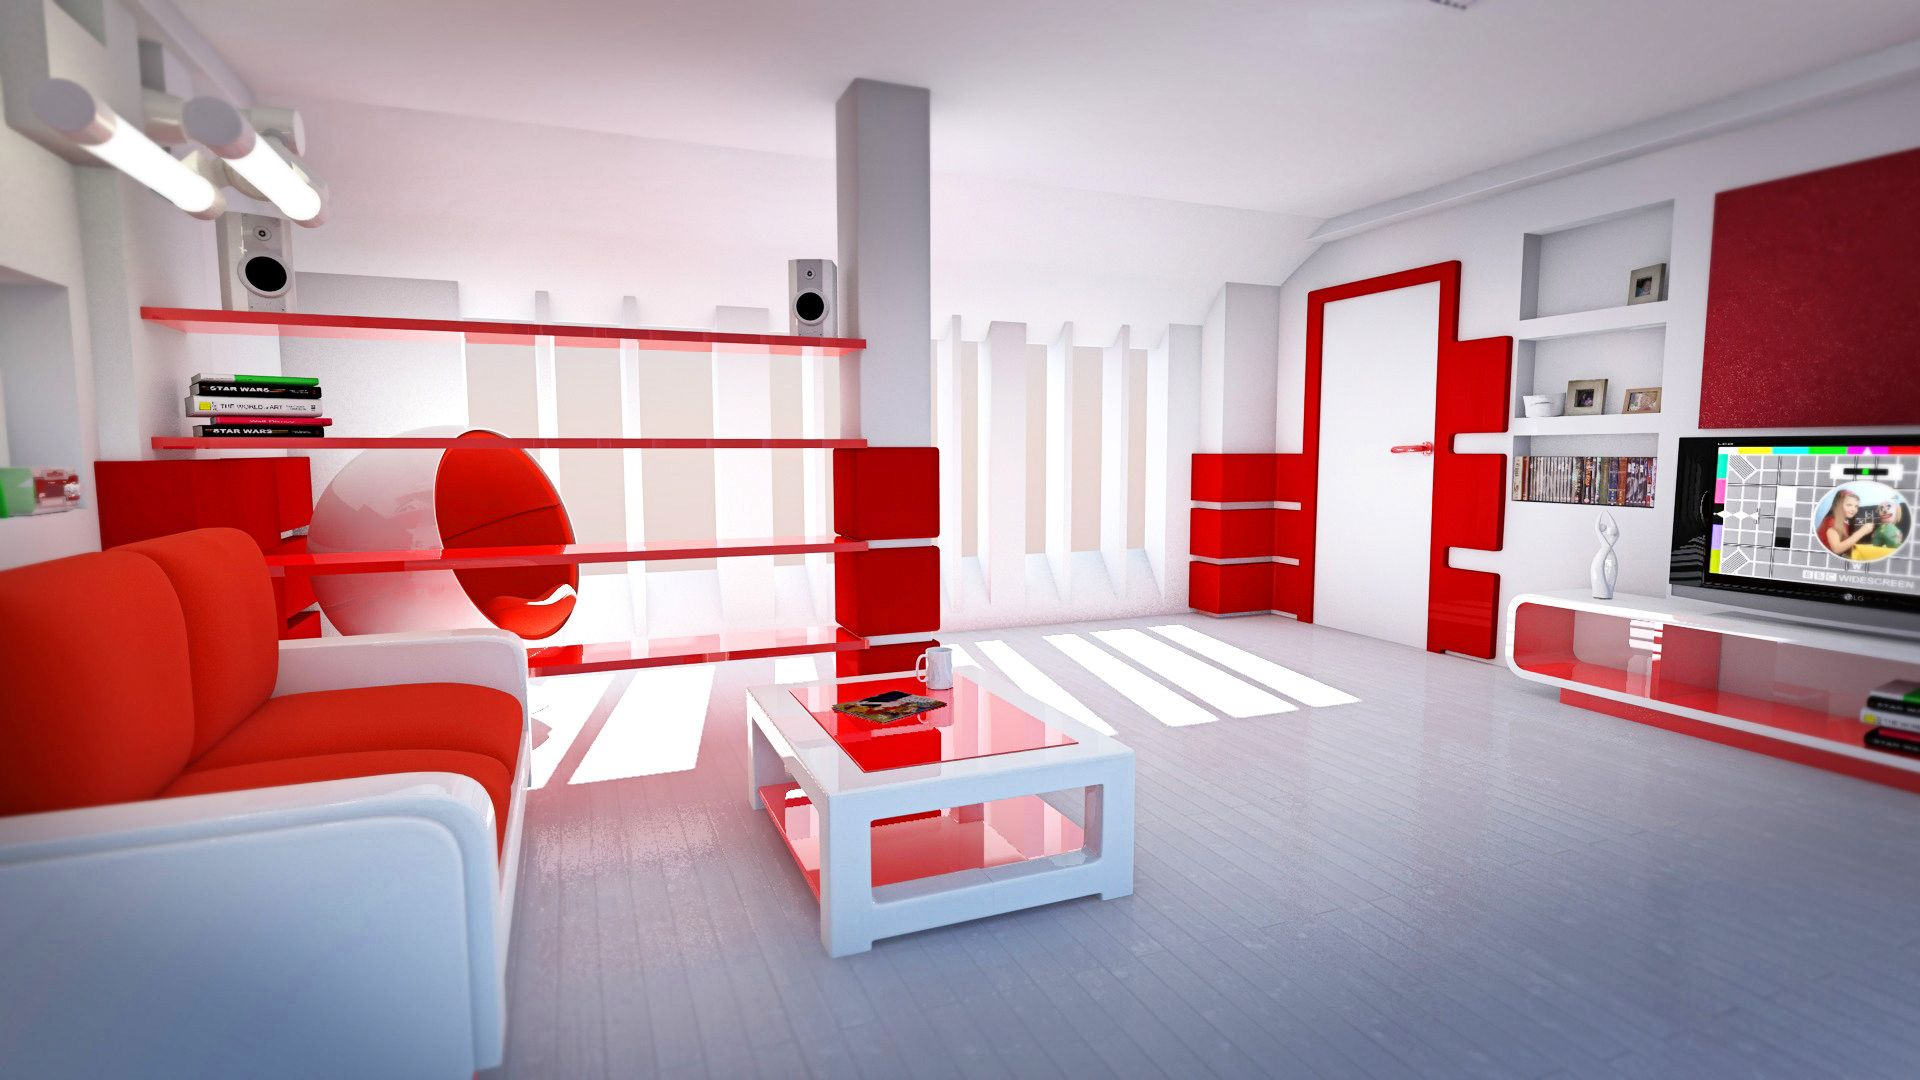 Red White Living Room Design With Sofa And Table Feat Stylish Entertainment  Plus Bubble Chair With Shelving: Exquisite And Sweet Red Accent Decor For  Modern ... Part 63